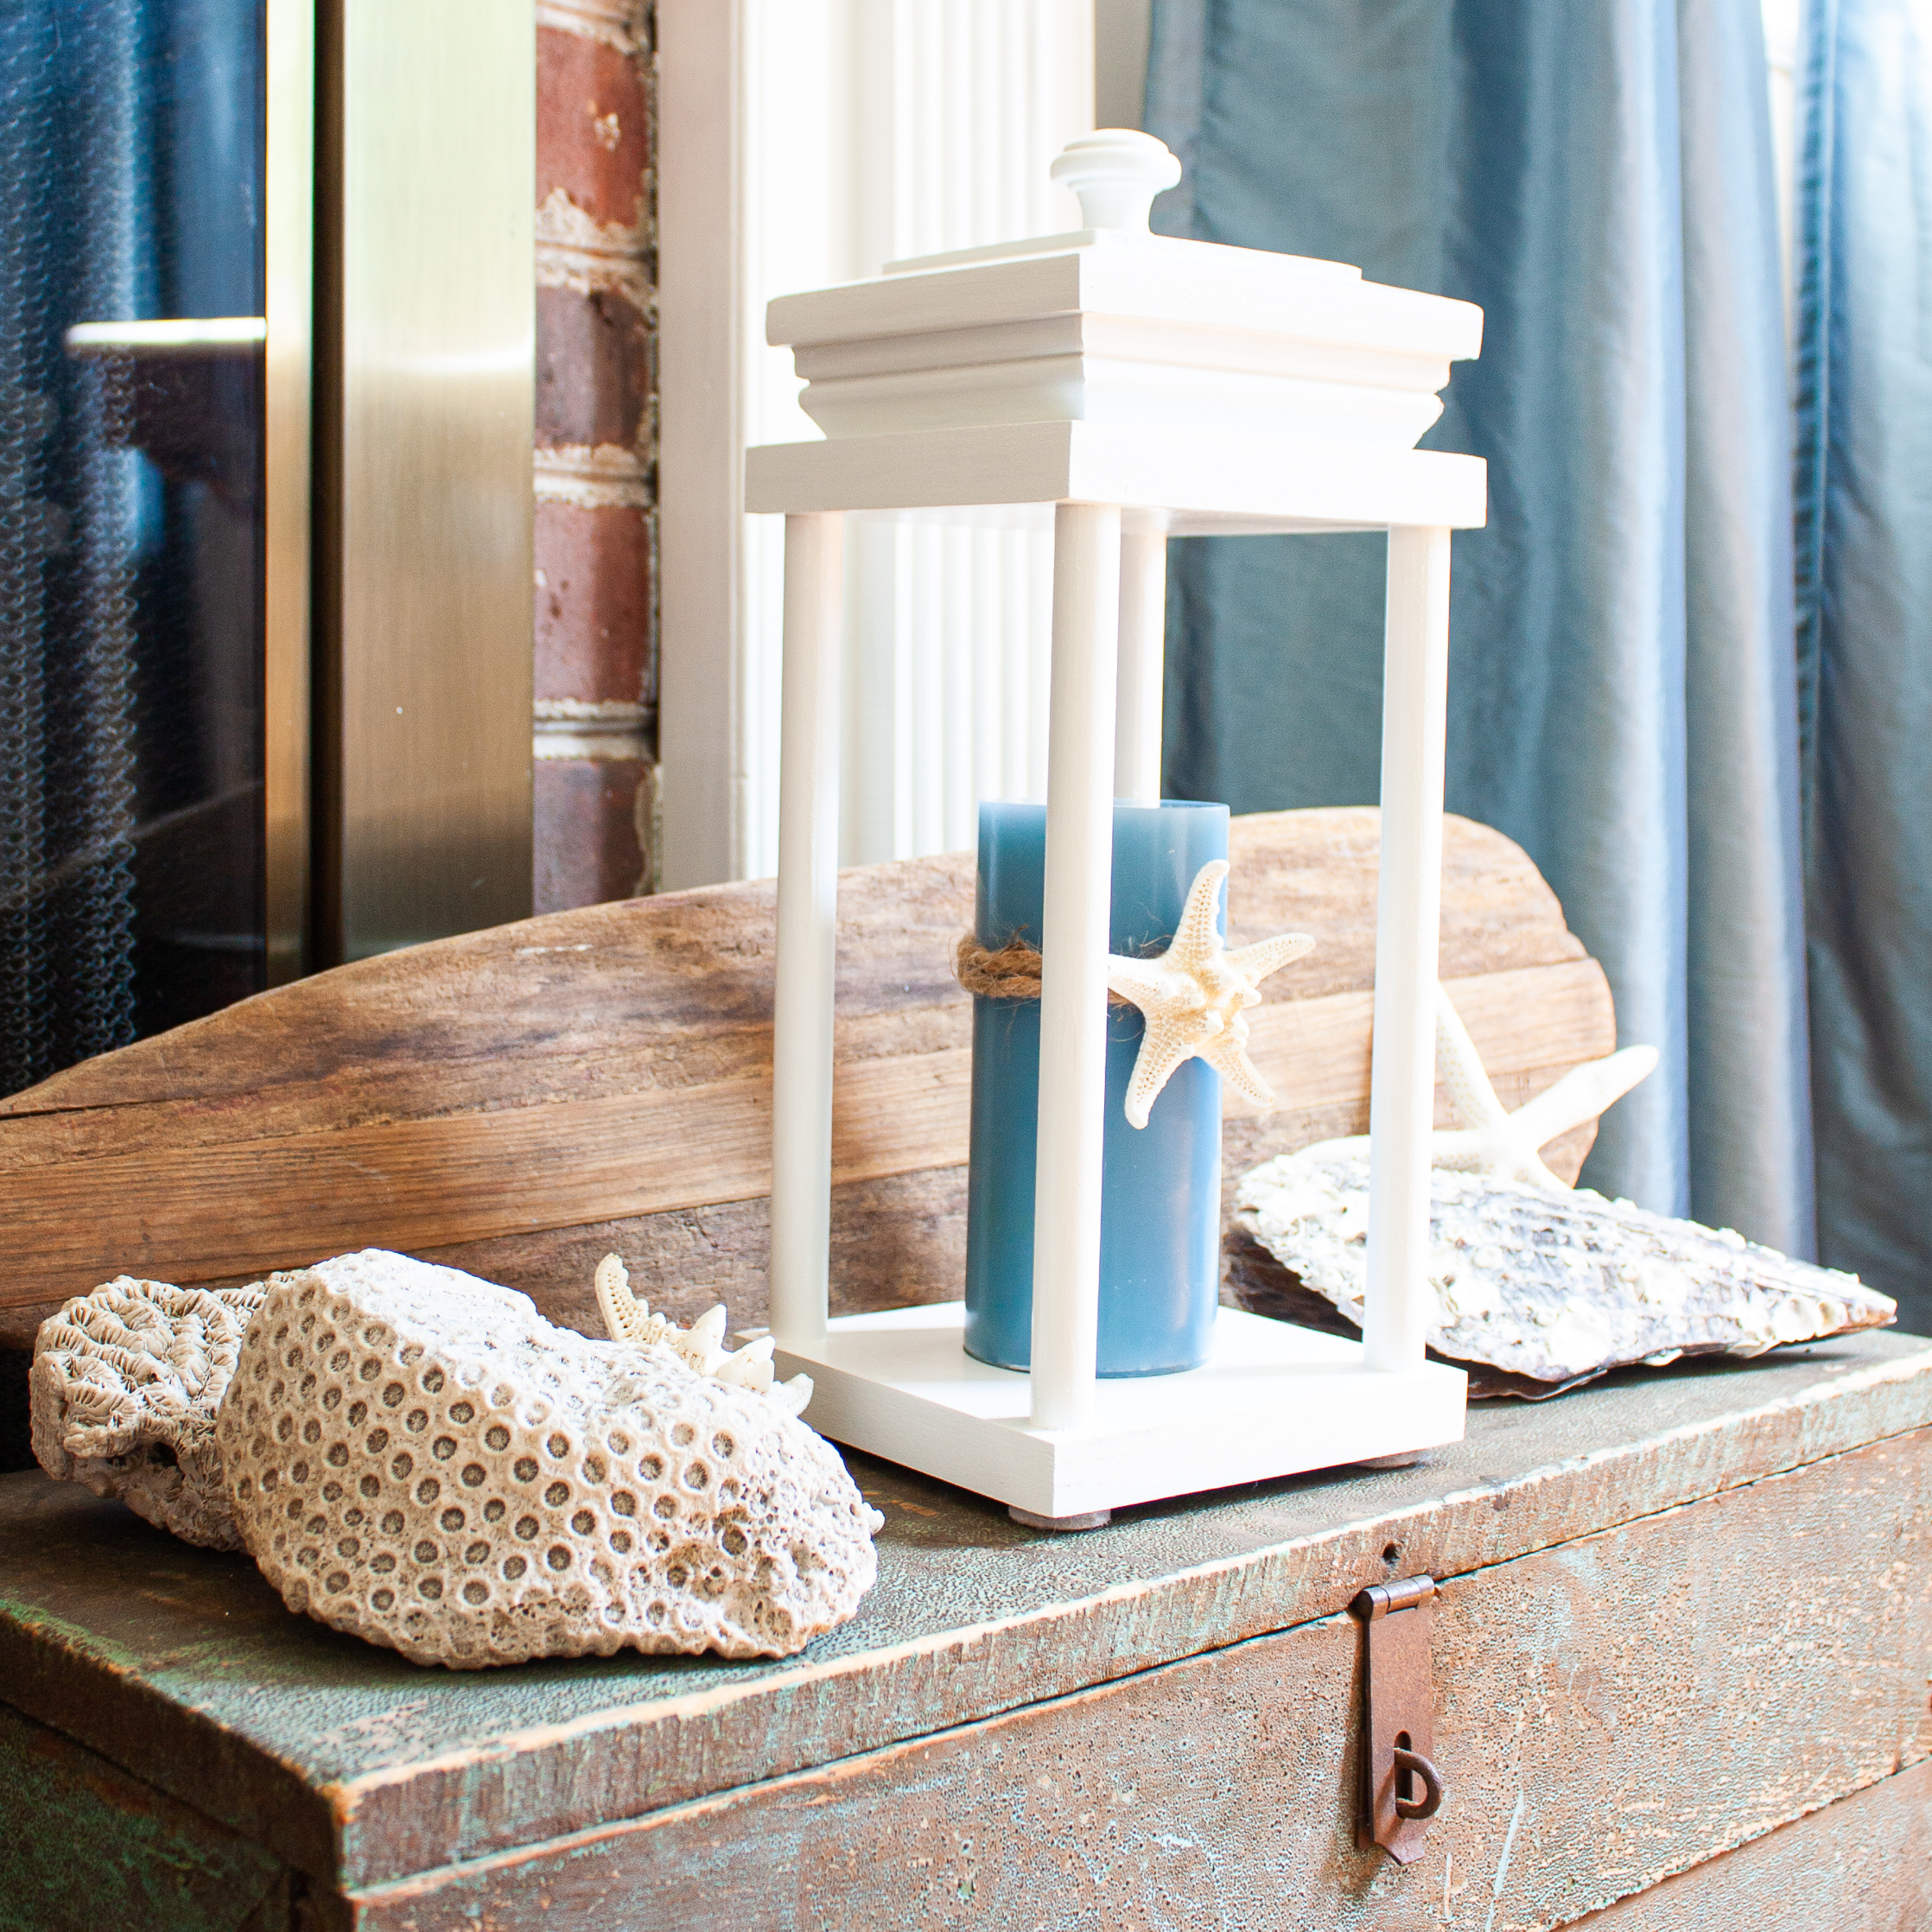 Use a lantern for beach decor